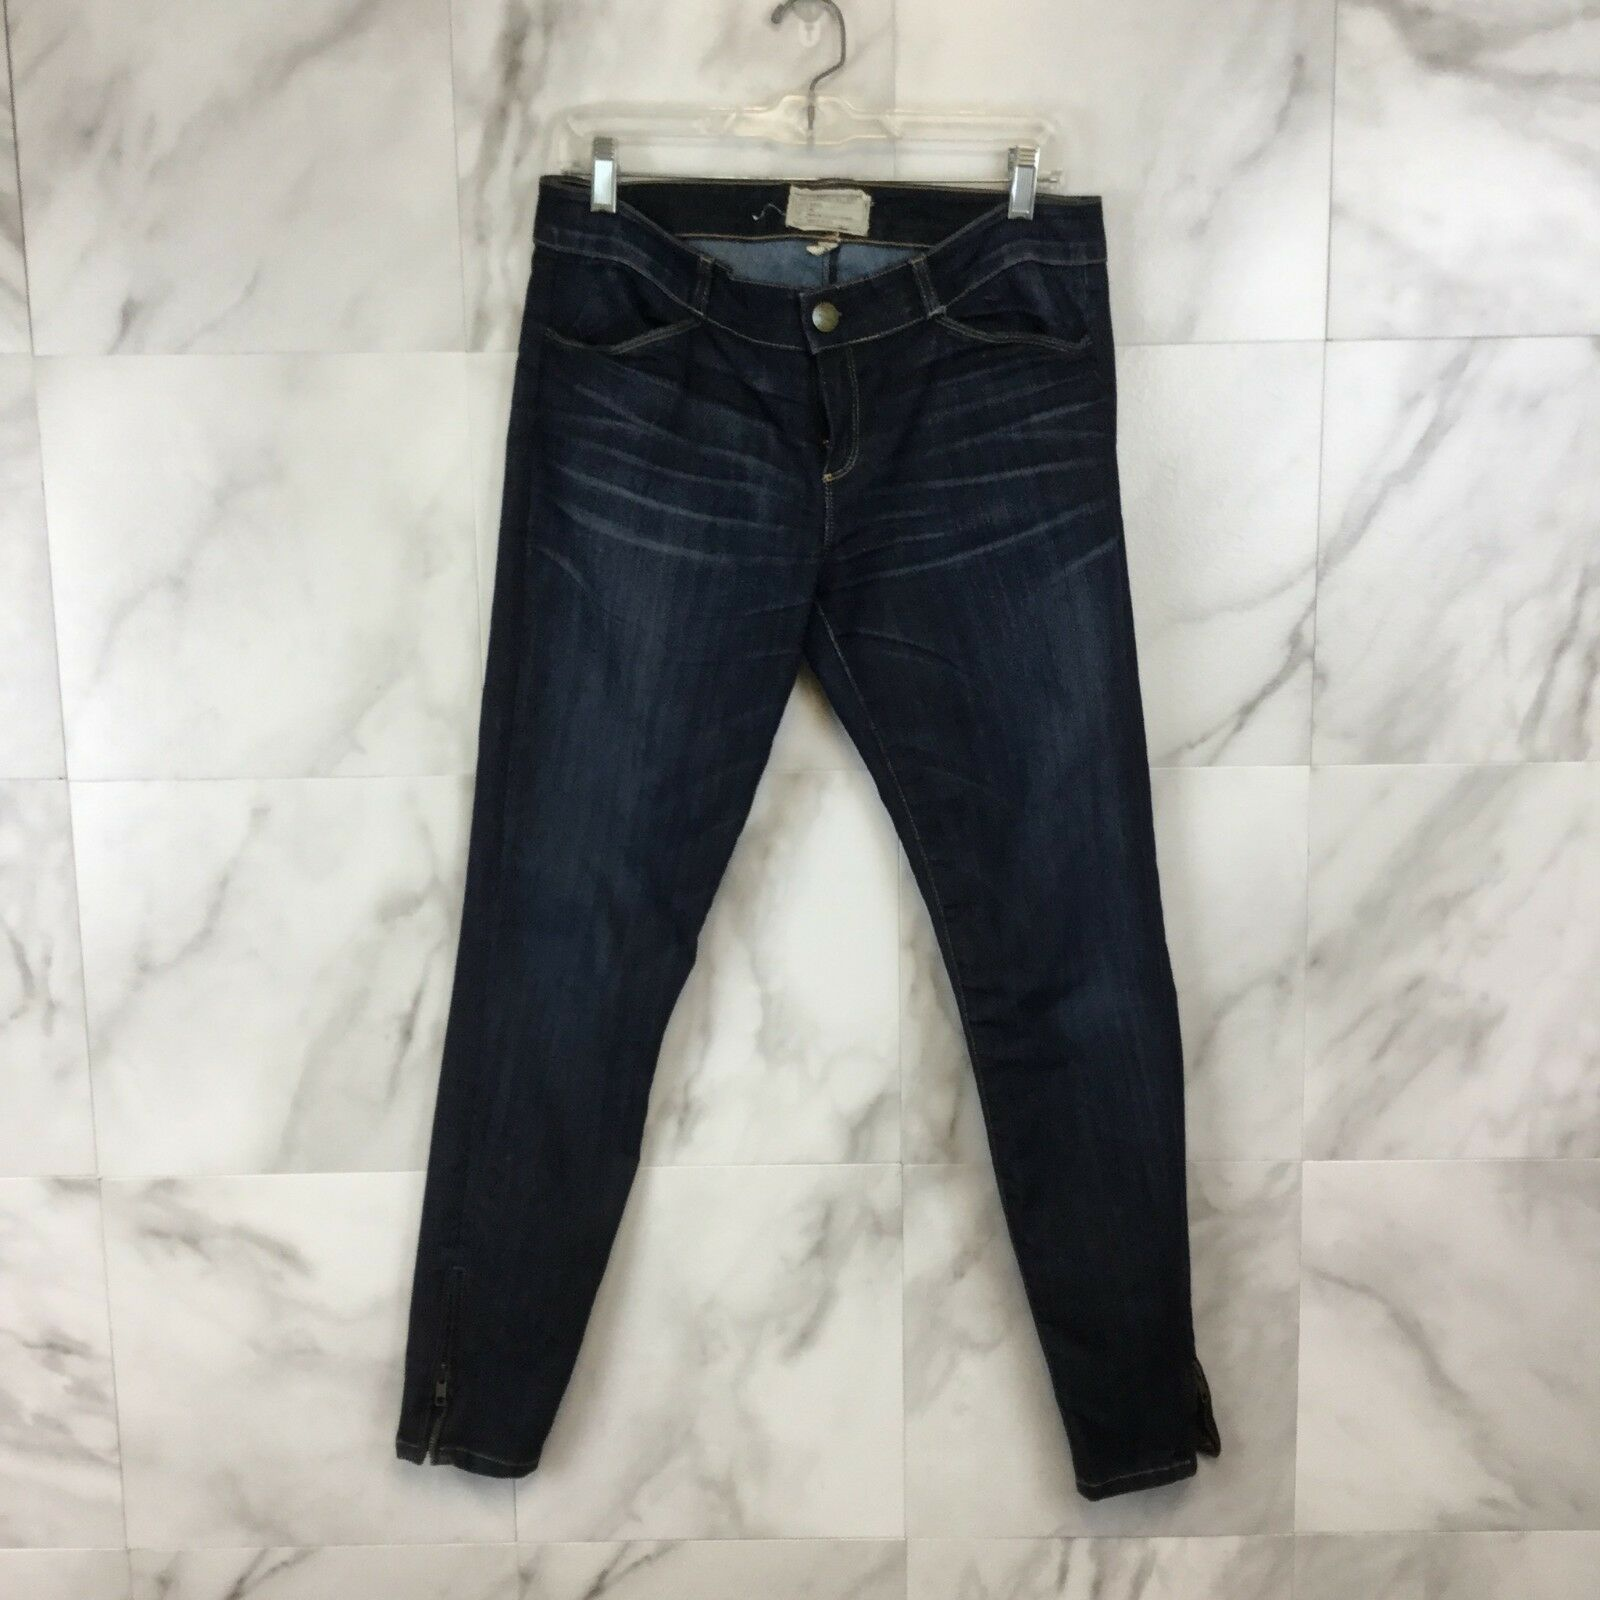 Current Elliott Zipper Skinny Jeans - Size 28